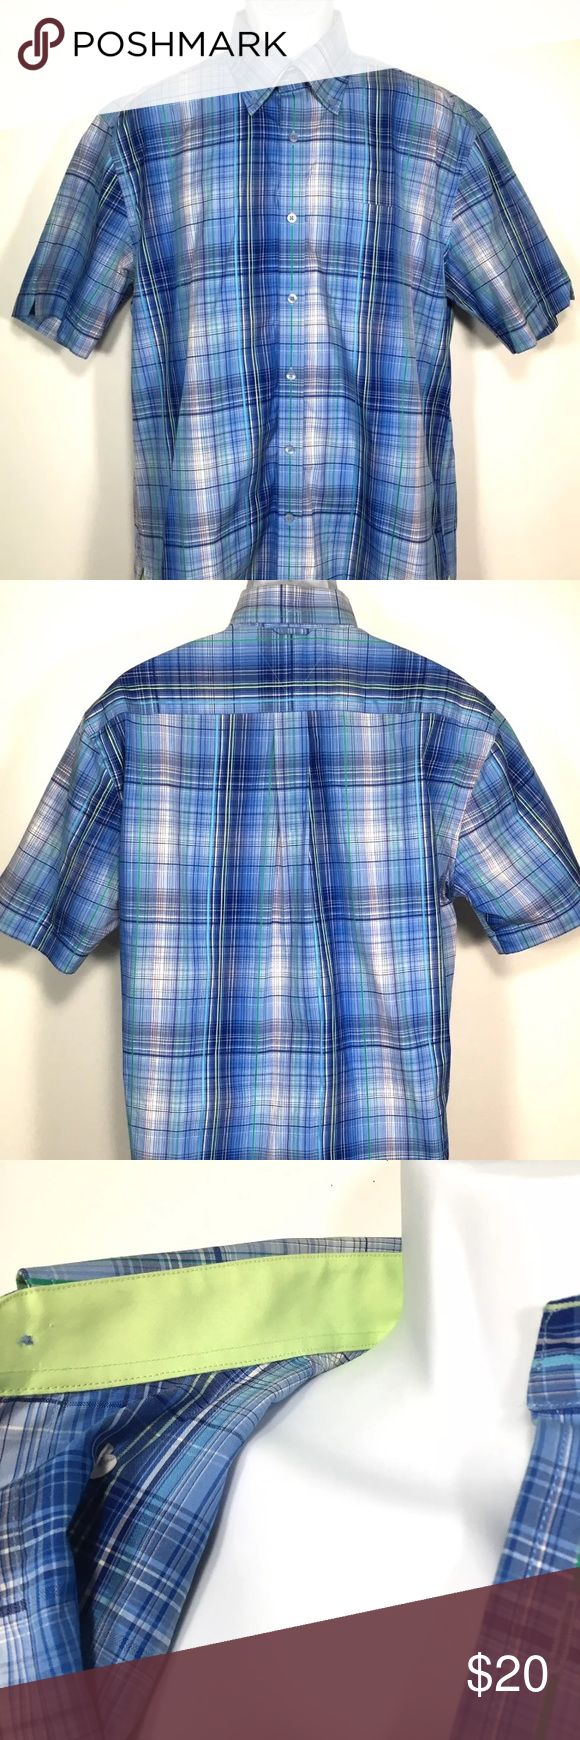 Tommy Hilfiger Blue Green Plaid Dress Shirt Size: Medium Color: Blue and Green (dominate colors) Style: 80's 2 Ply Fabric Measurements in INCHES and laying flat (approximate) Length: 32 Underarm to underarm: 23 Waist: 22.5  🌸BUNDLE AND SAVE  🌸NO TRADES - PRICE IS FIRM 🌸FEEL FREE TO ASK QUESTIONS 🌸I DO NOT MODEL Custom Sku N70 Tommy Hilfiger Shirts Casual Button Down Shirts